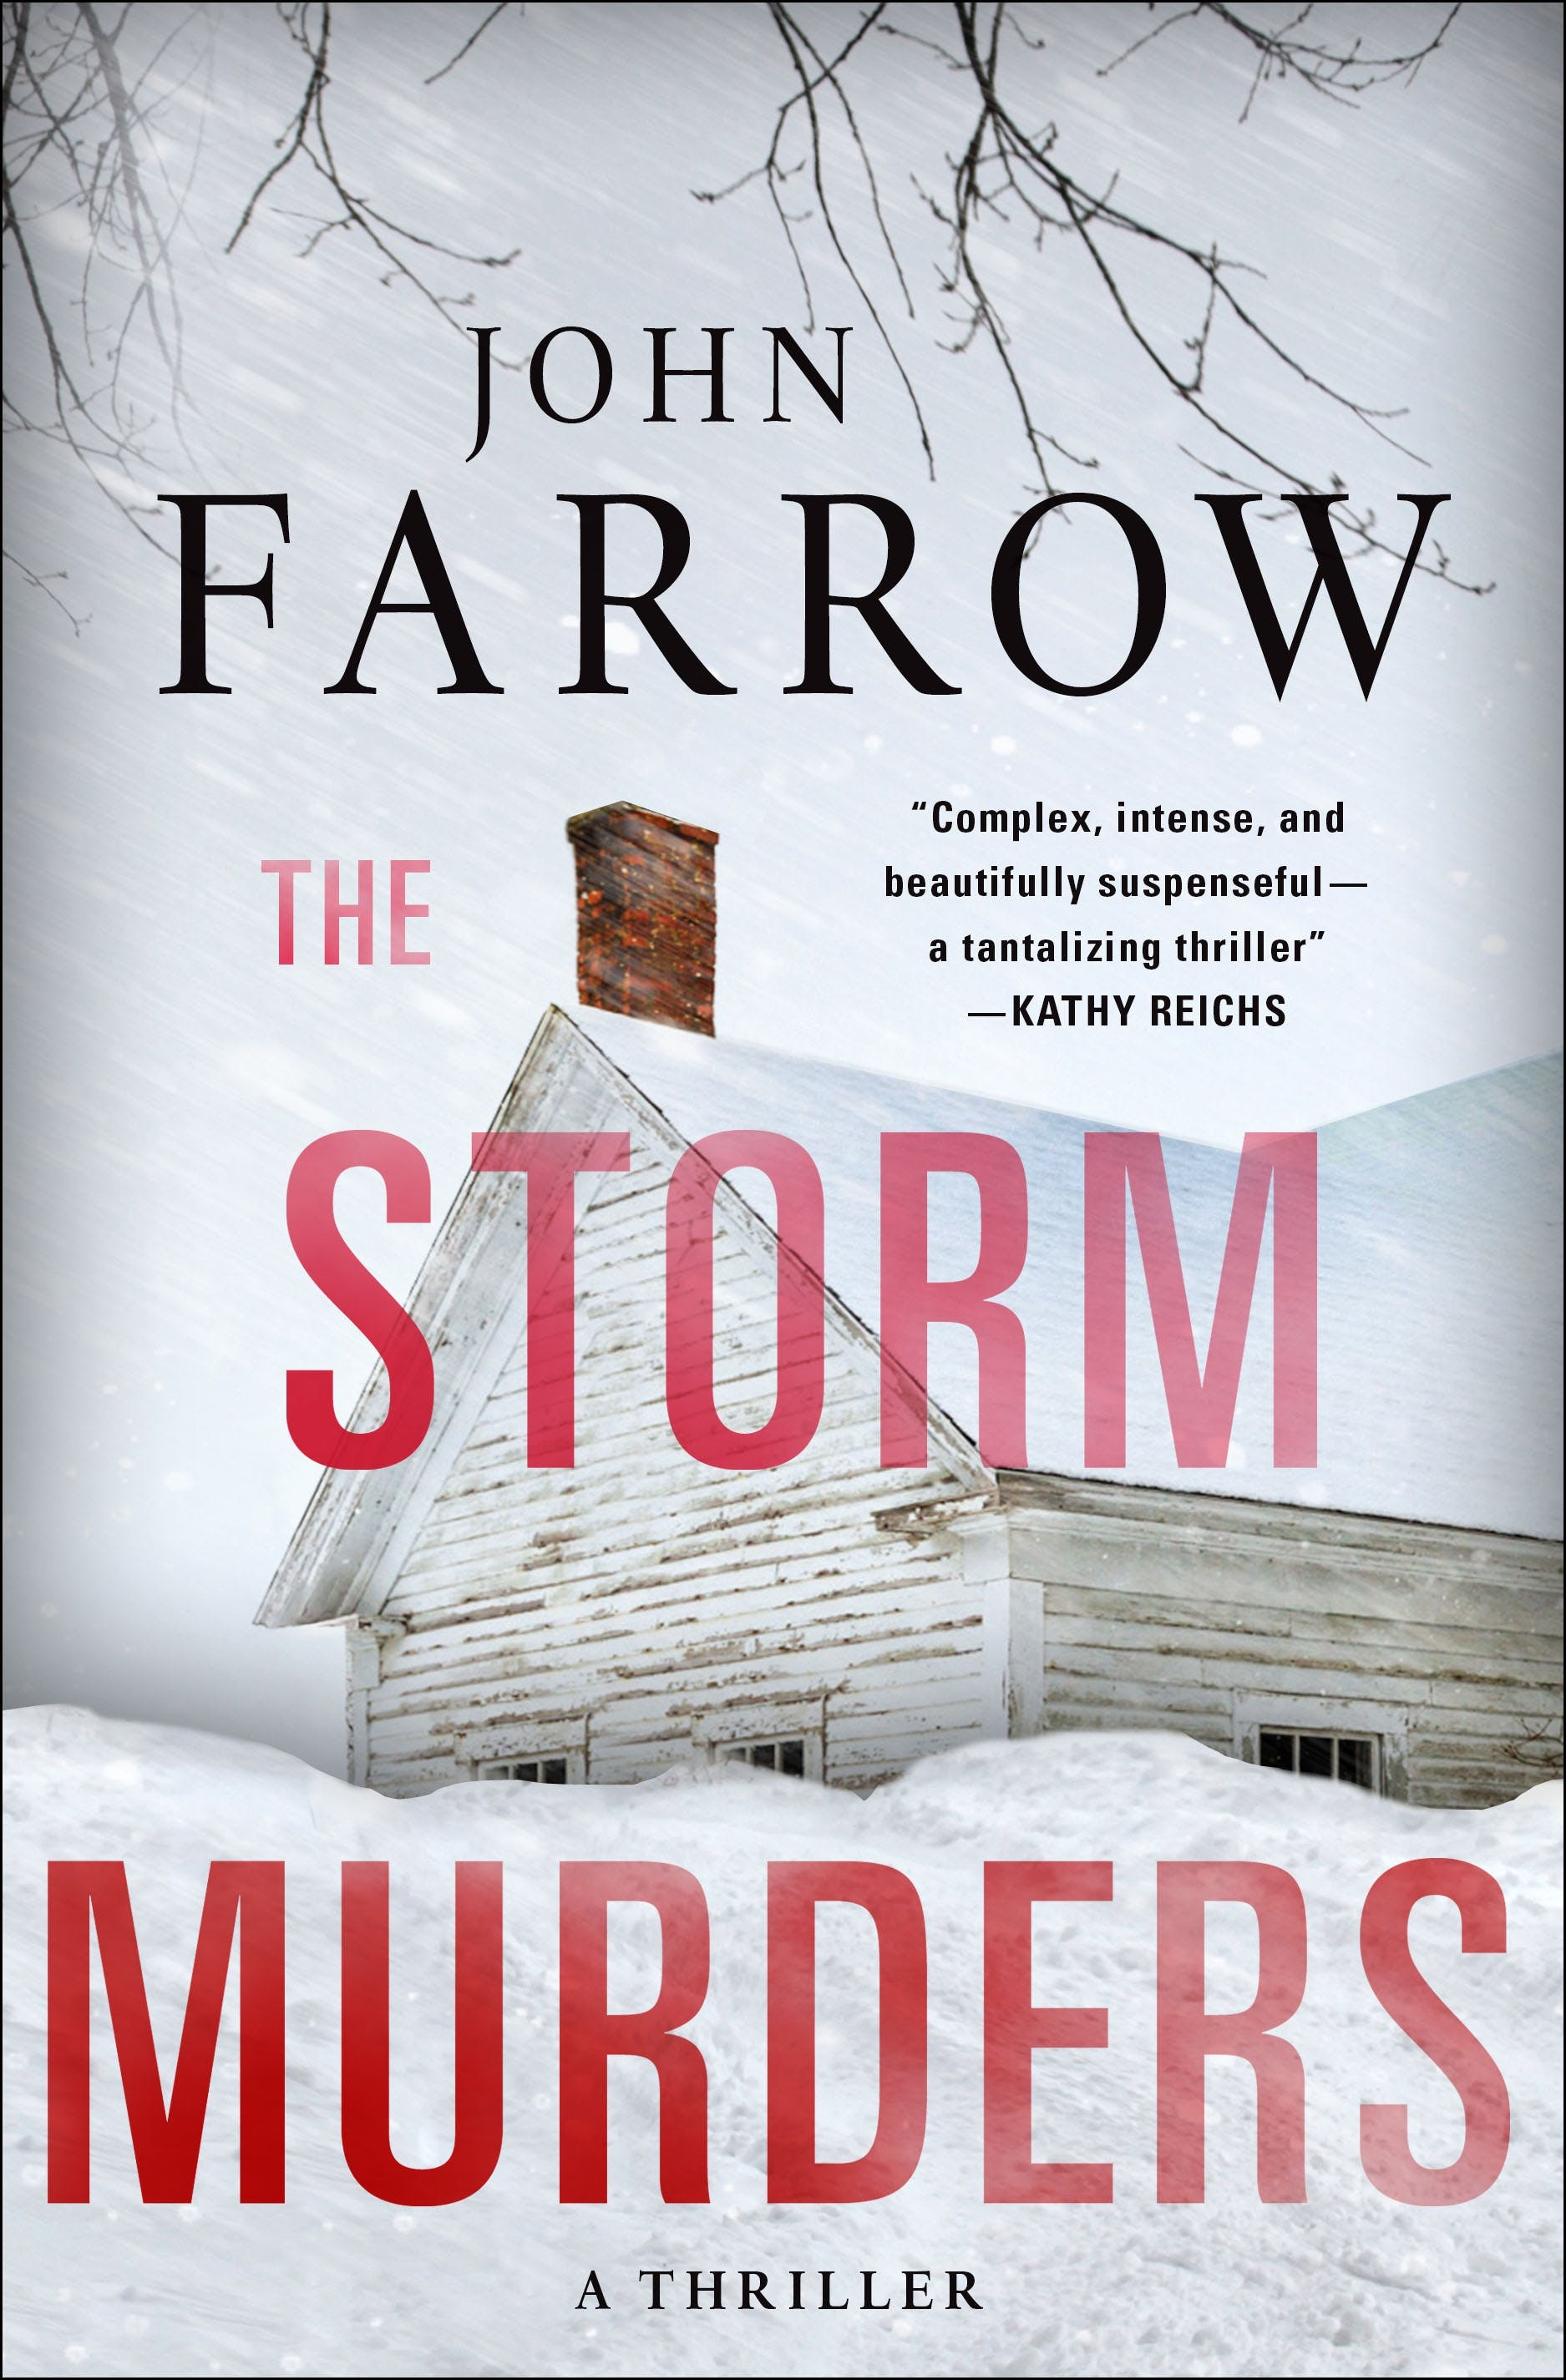 Image of The Storm Murders